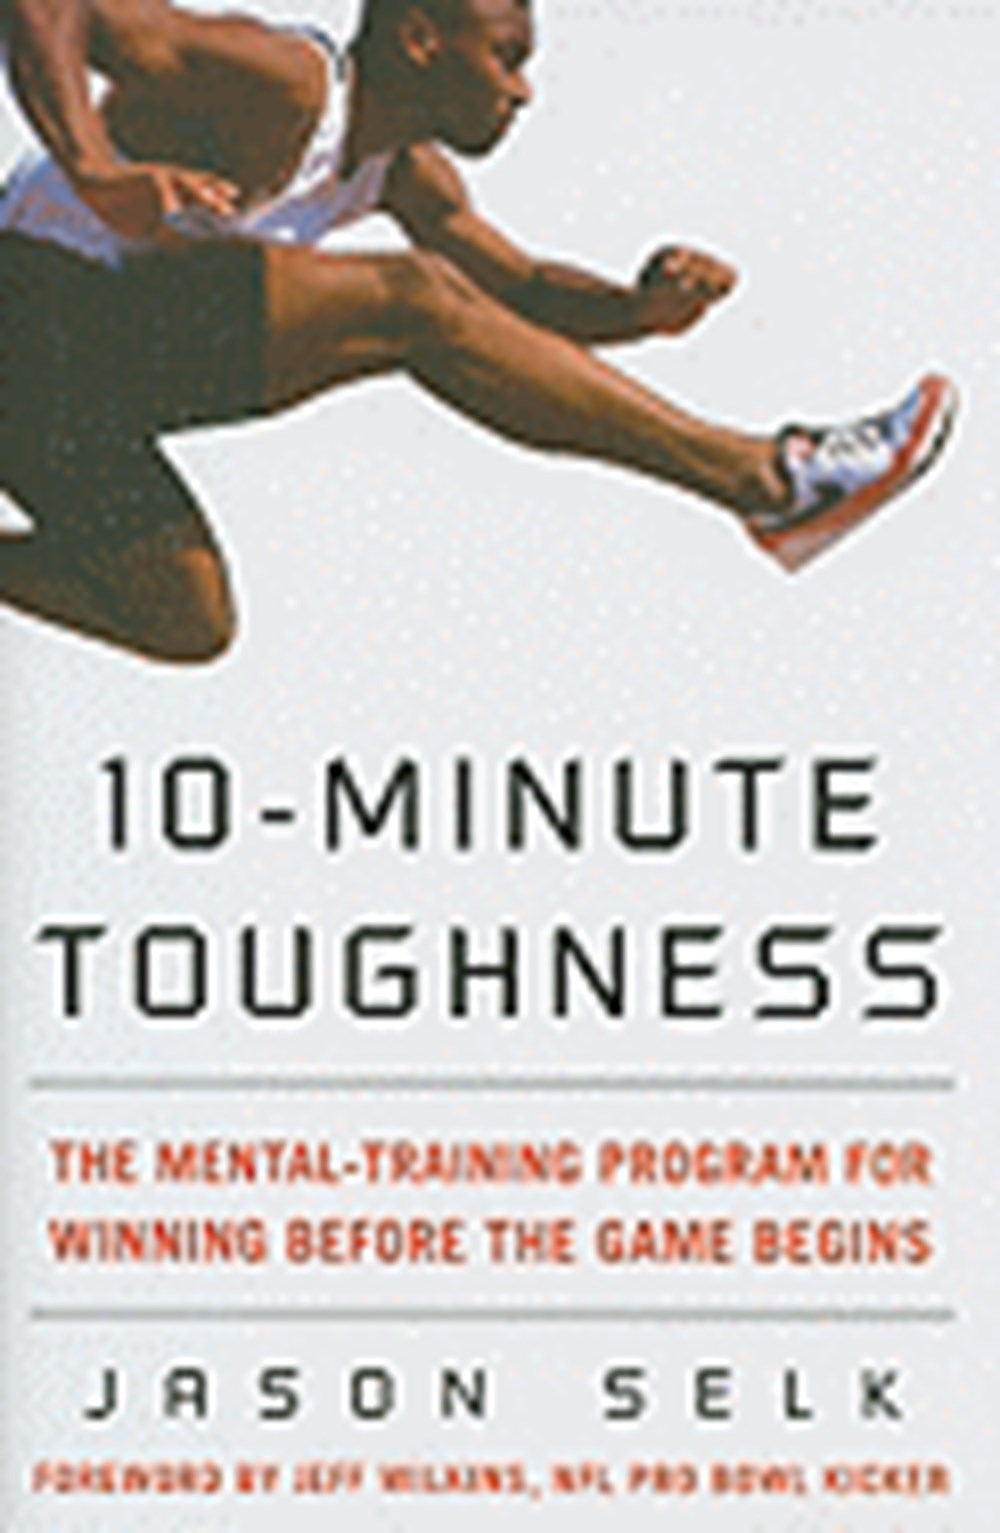 10-Minute Toughness The Mental Training Program for Winning Before the Game Begins